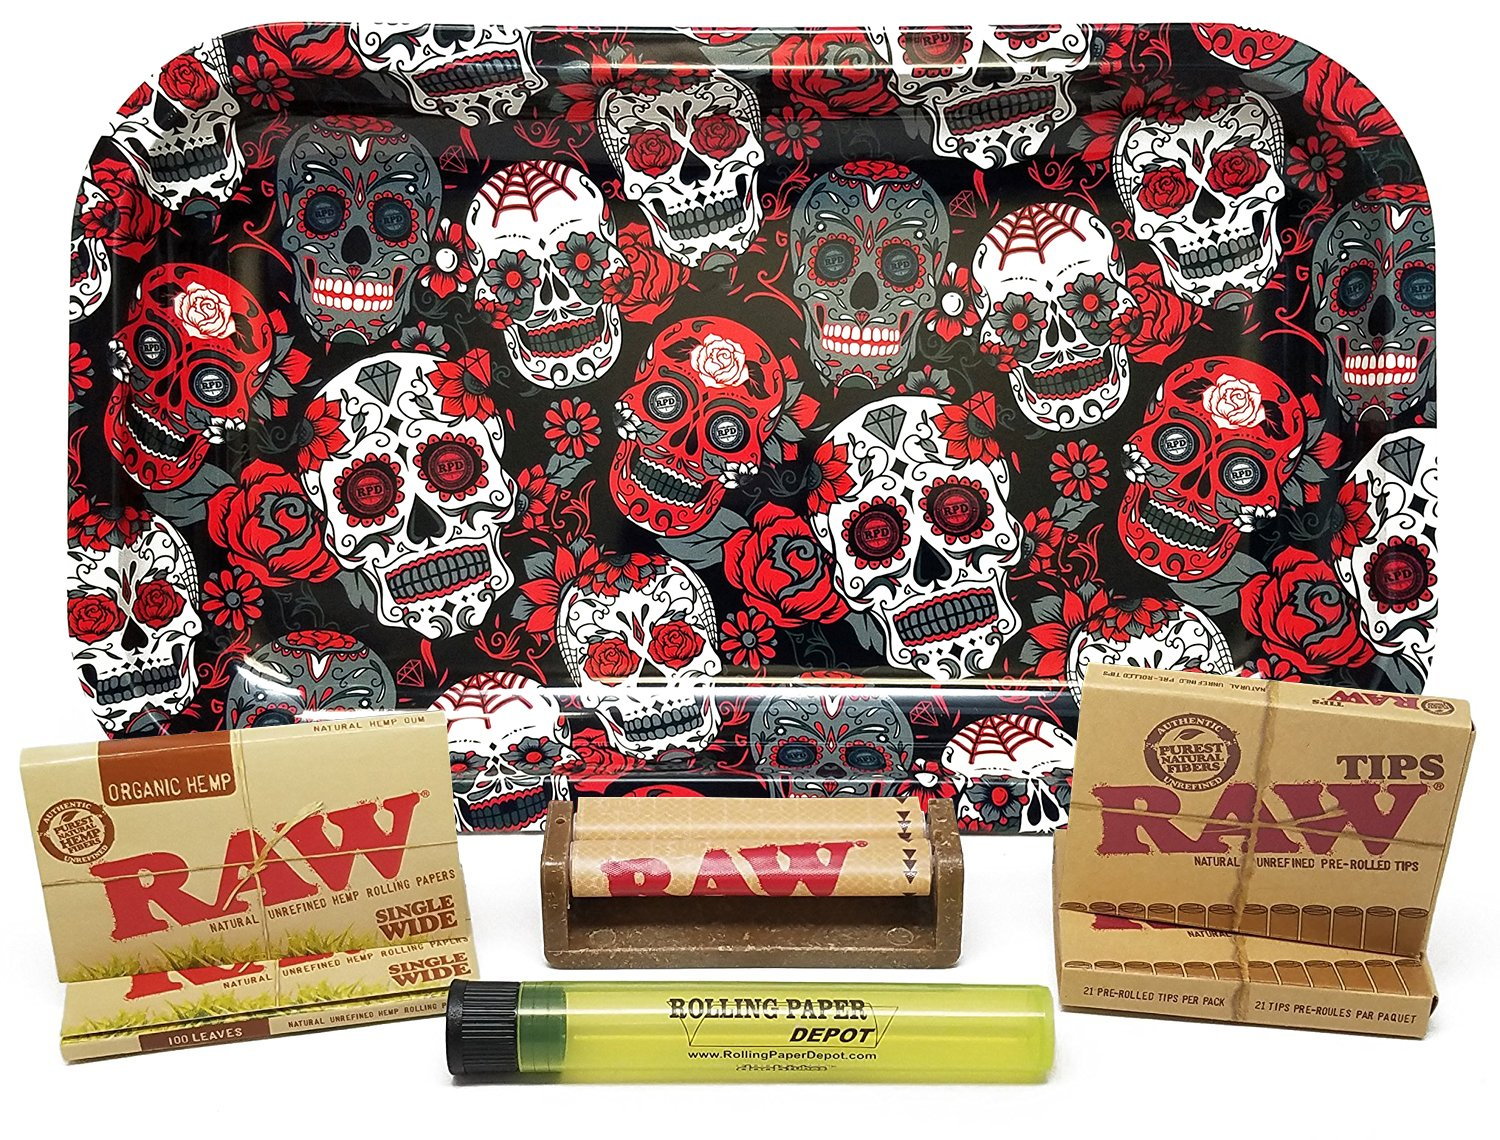 Bundle - 7 Items - Rolling Paper Depot Rolling Tray with RAW Single Wide Rolling Papers, Pre-Rolled Tips, 70mm Roller and Doobtube (Organic, Skulls)